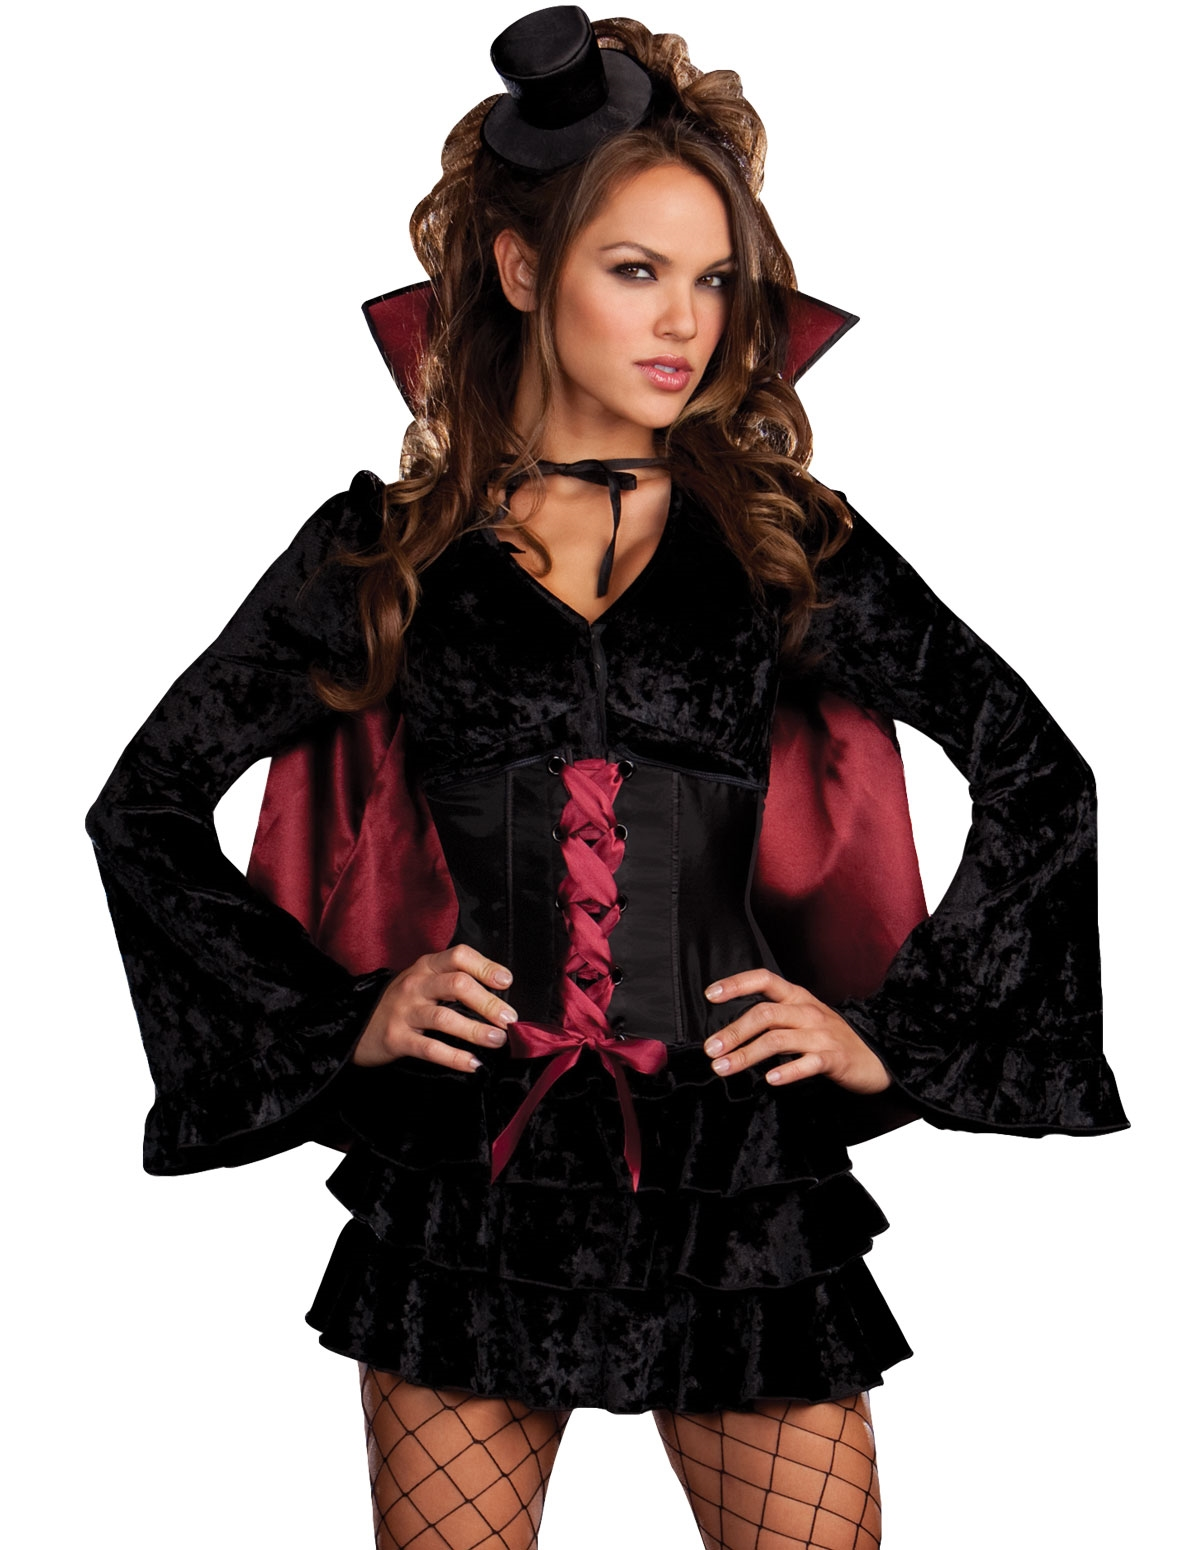 Bella Vamp Costume